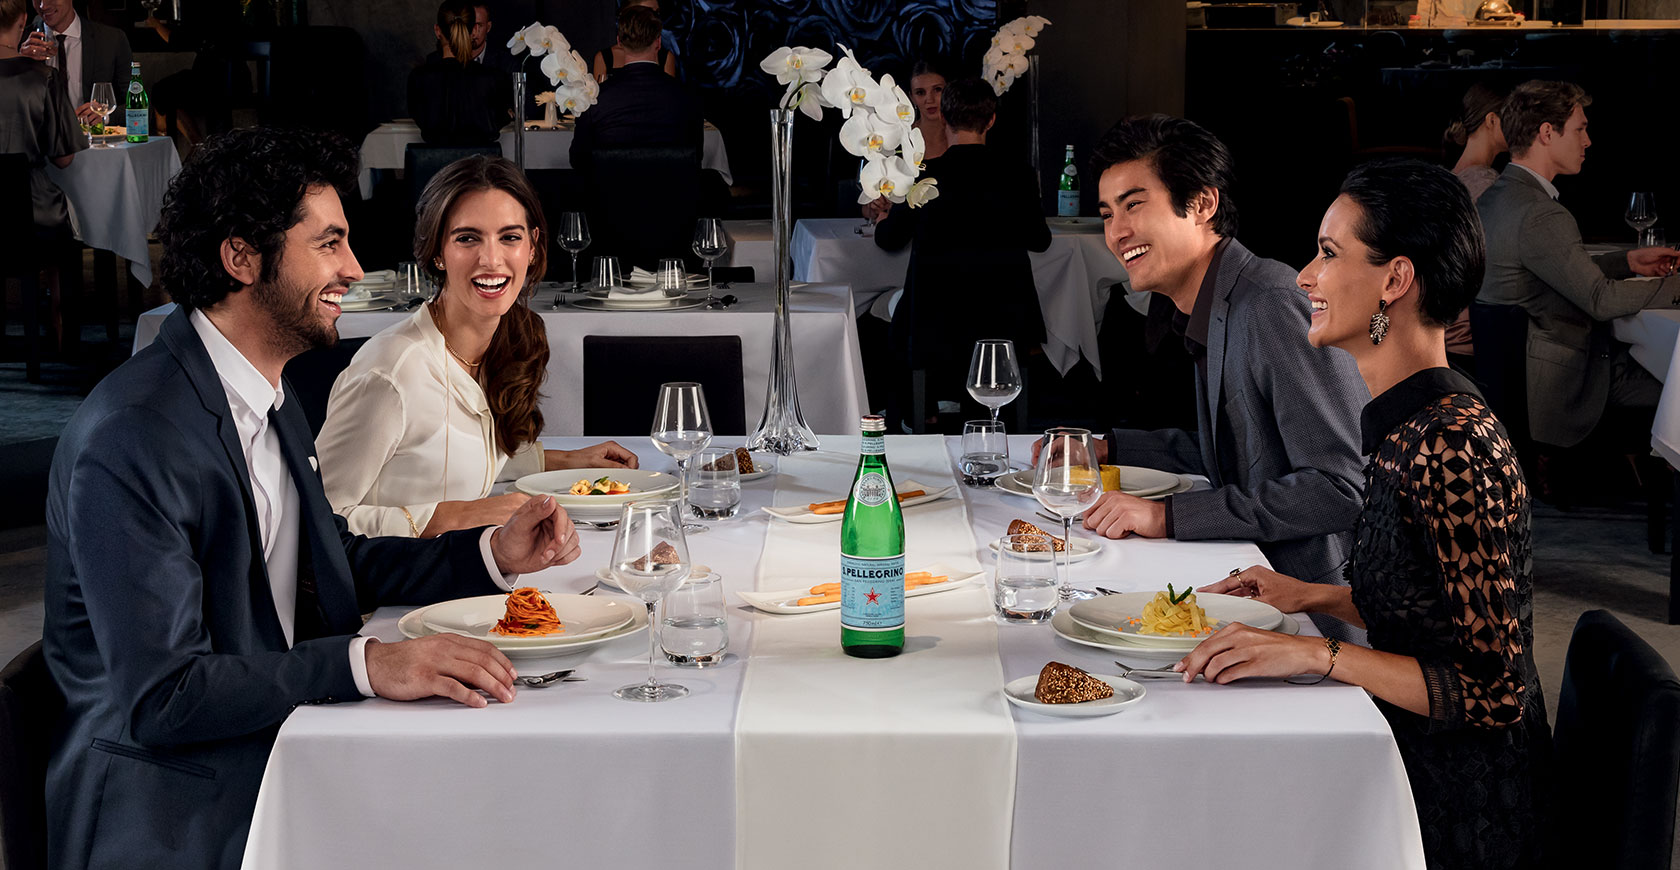 S.Pellegrino, the most refined Italian sparkling water